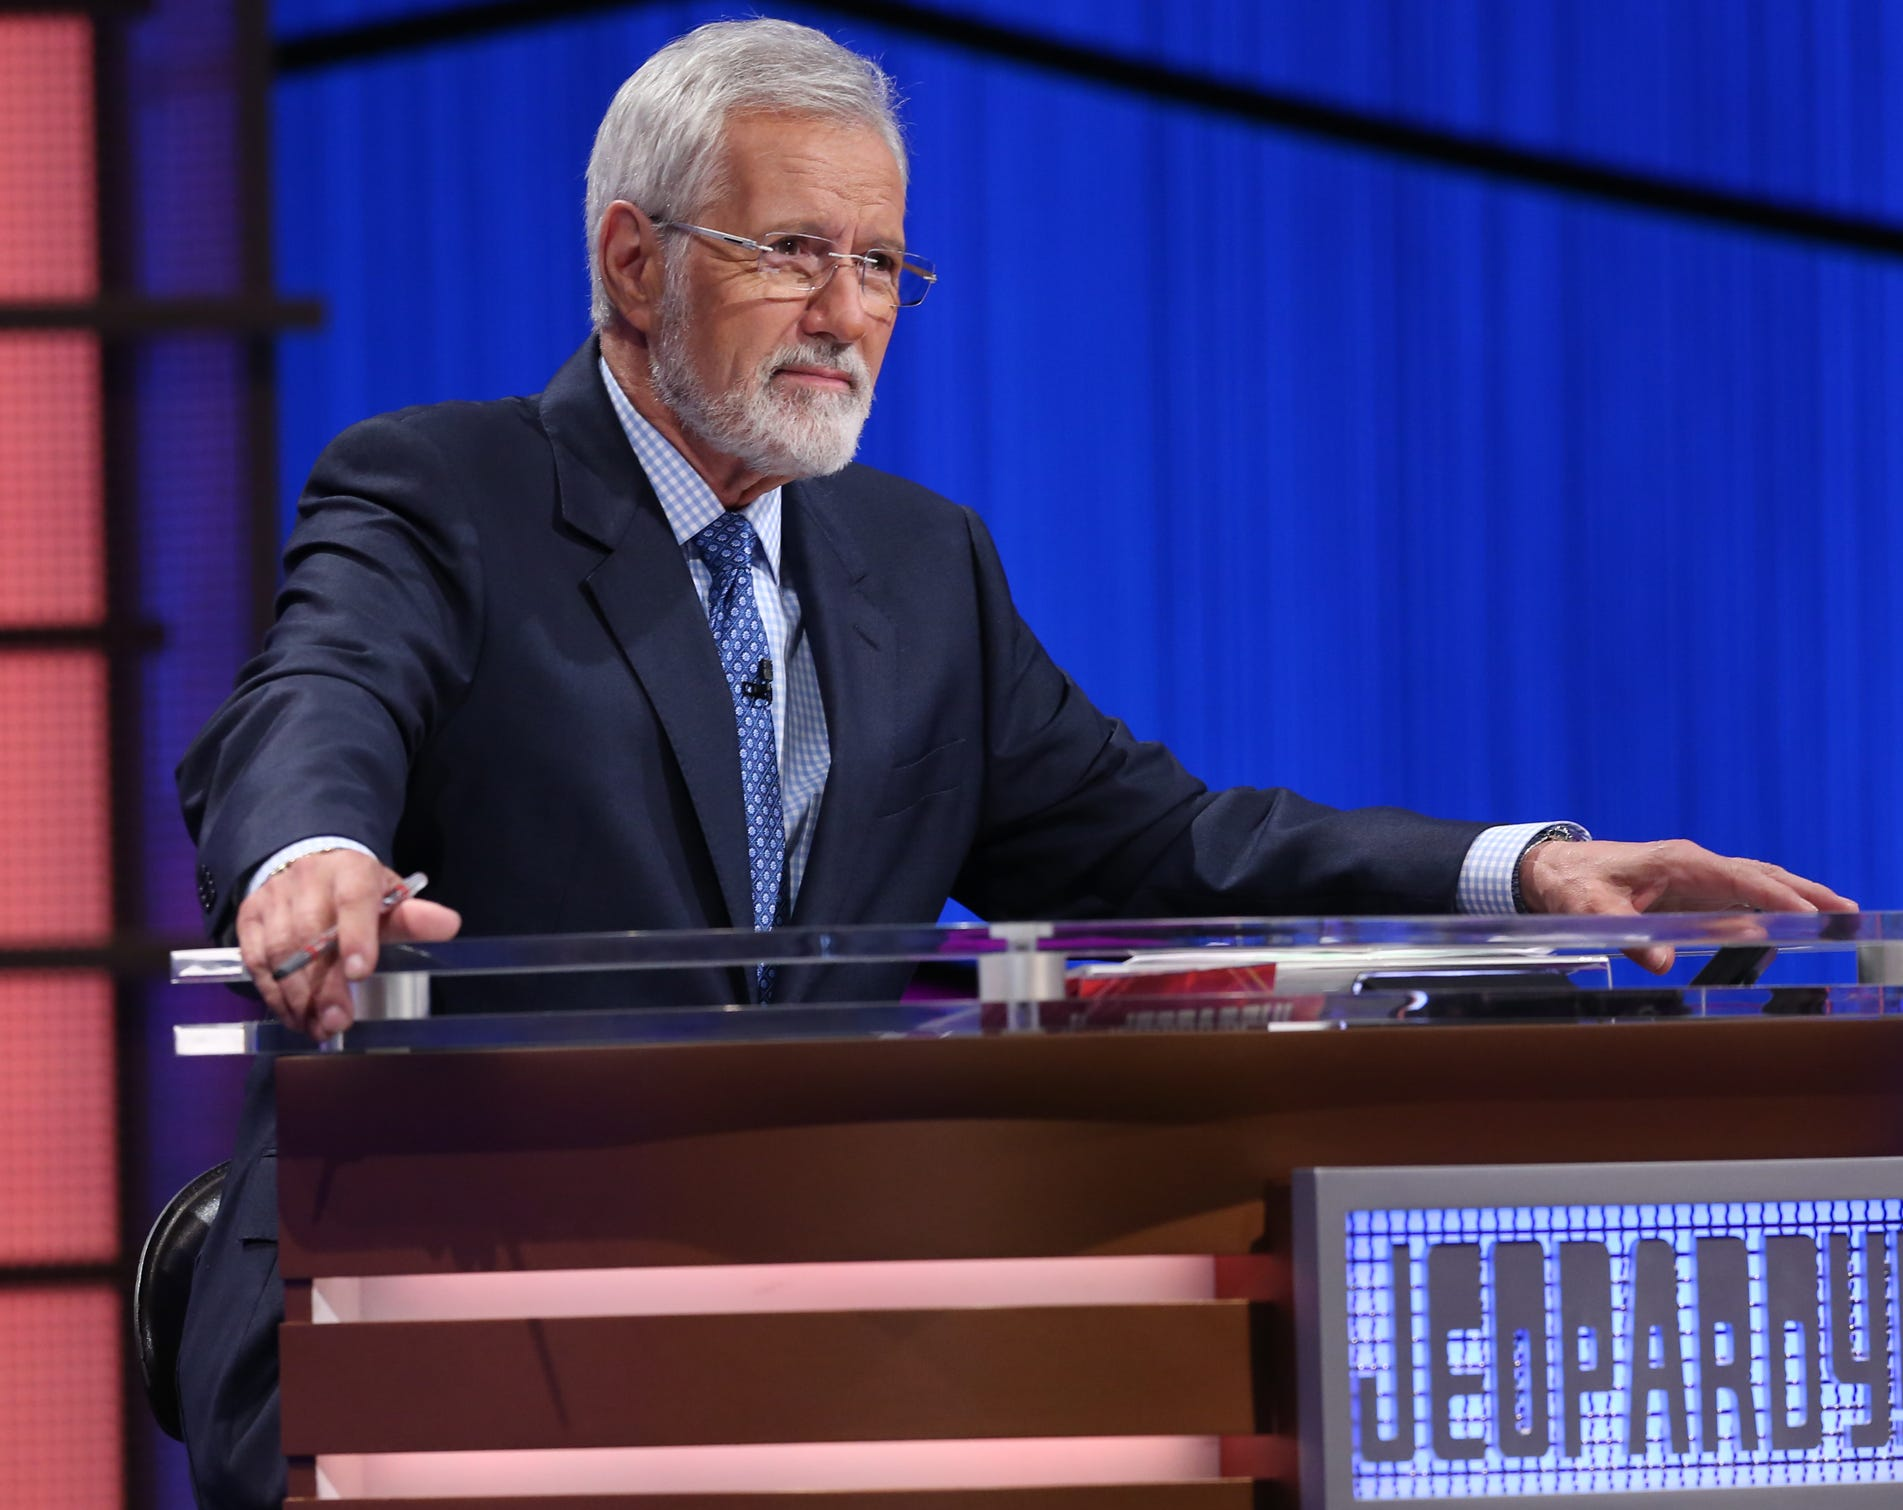 """Alex Trebeck returned to """"Jeopardy!"""" with a beard for the show's 35th anniversary, which he has since shaved."""